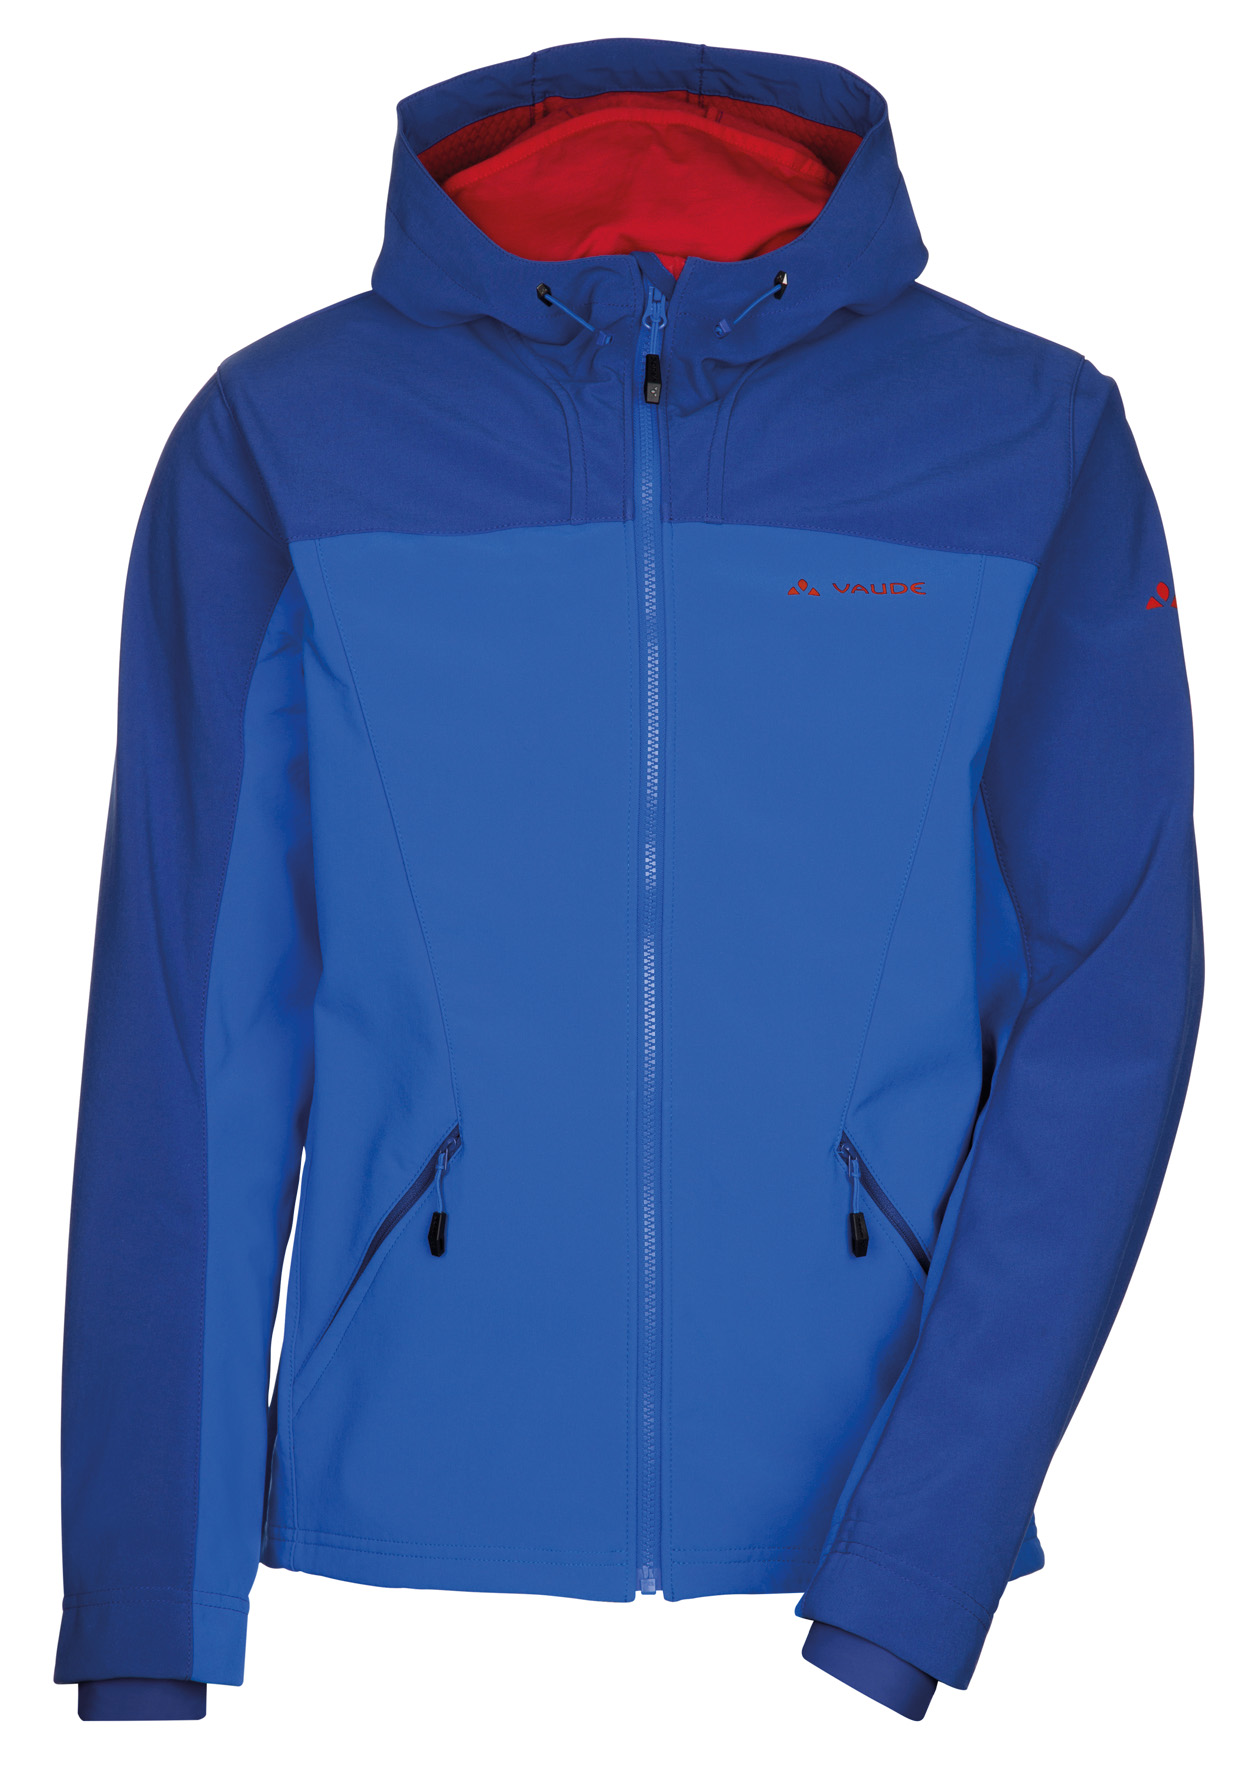 Men´s Takesi Softshell Jacket hydro blue Größe M - schneider-sports